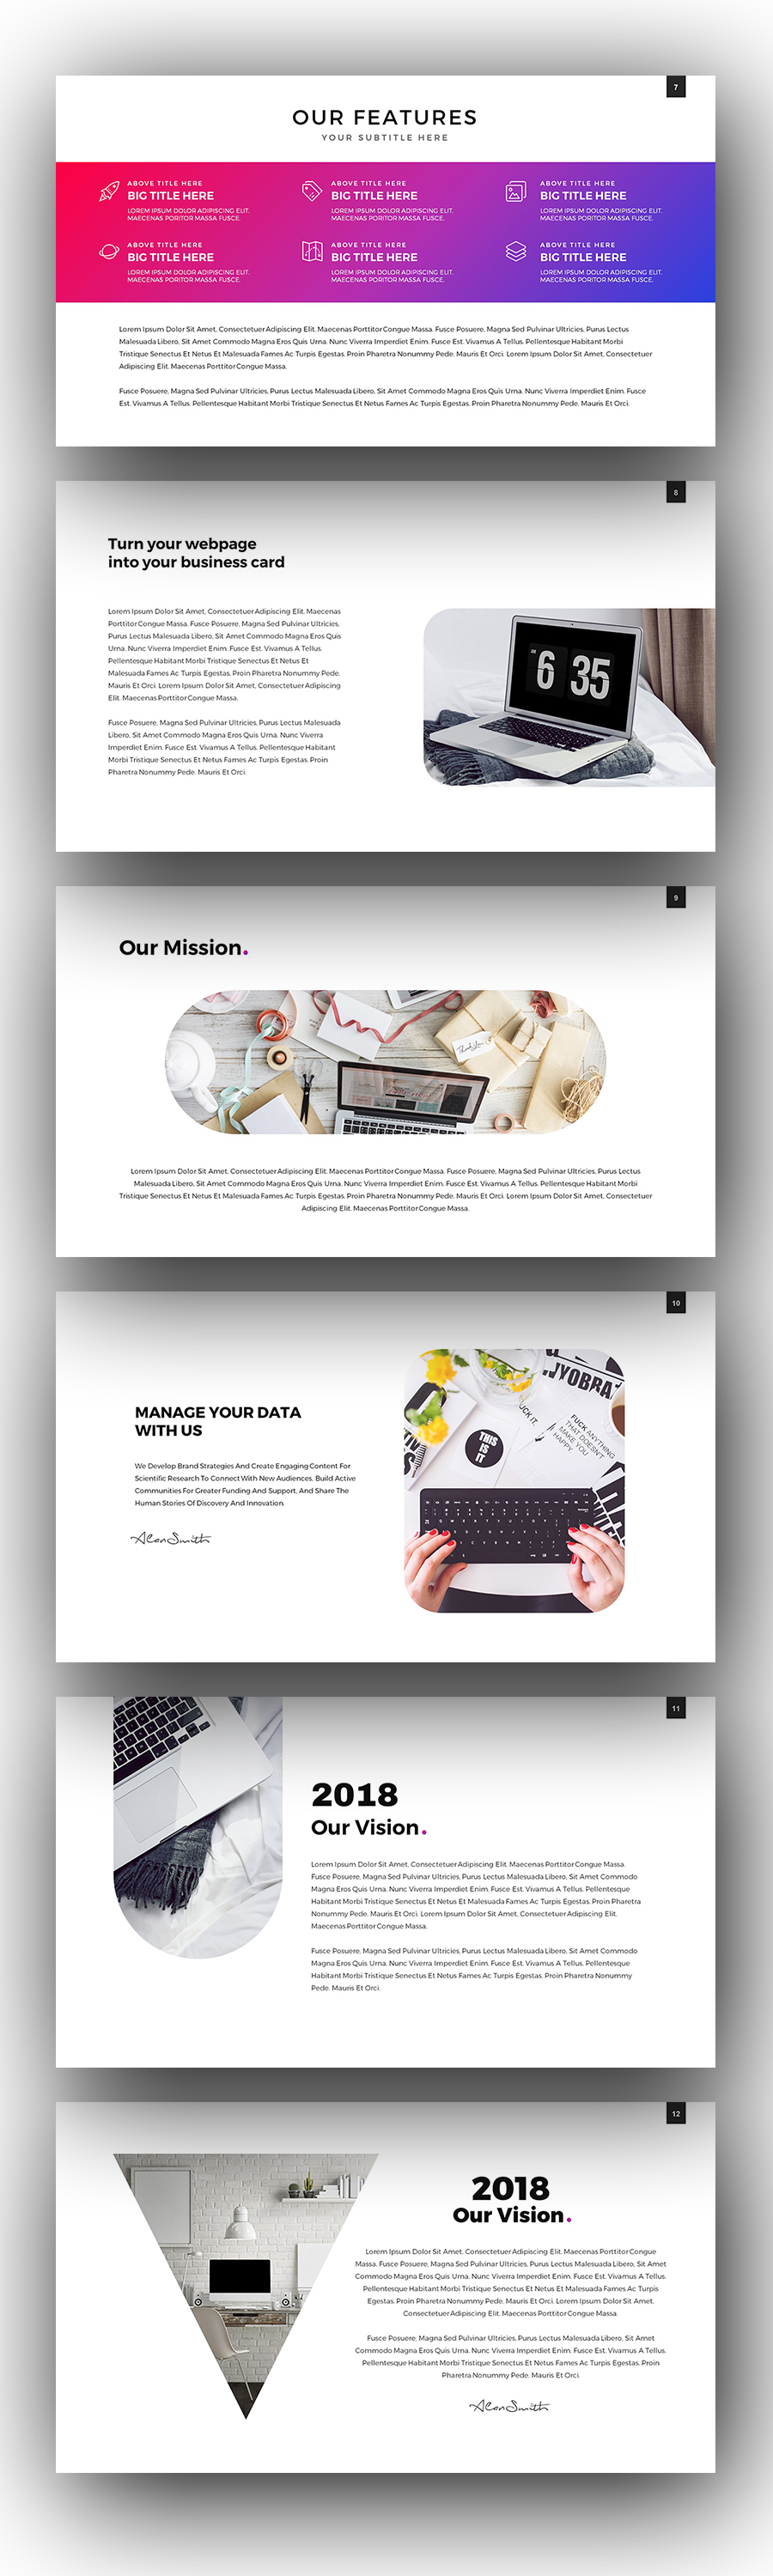 Stack Google Slides Template by Hemalaya1 | GraphicRiver